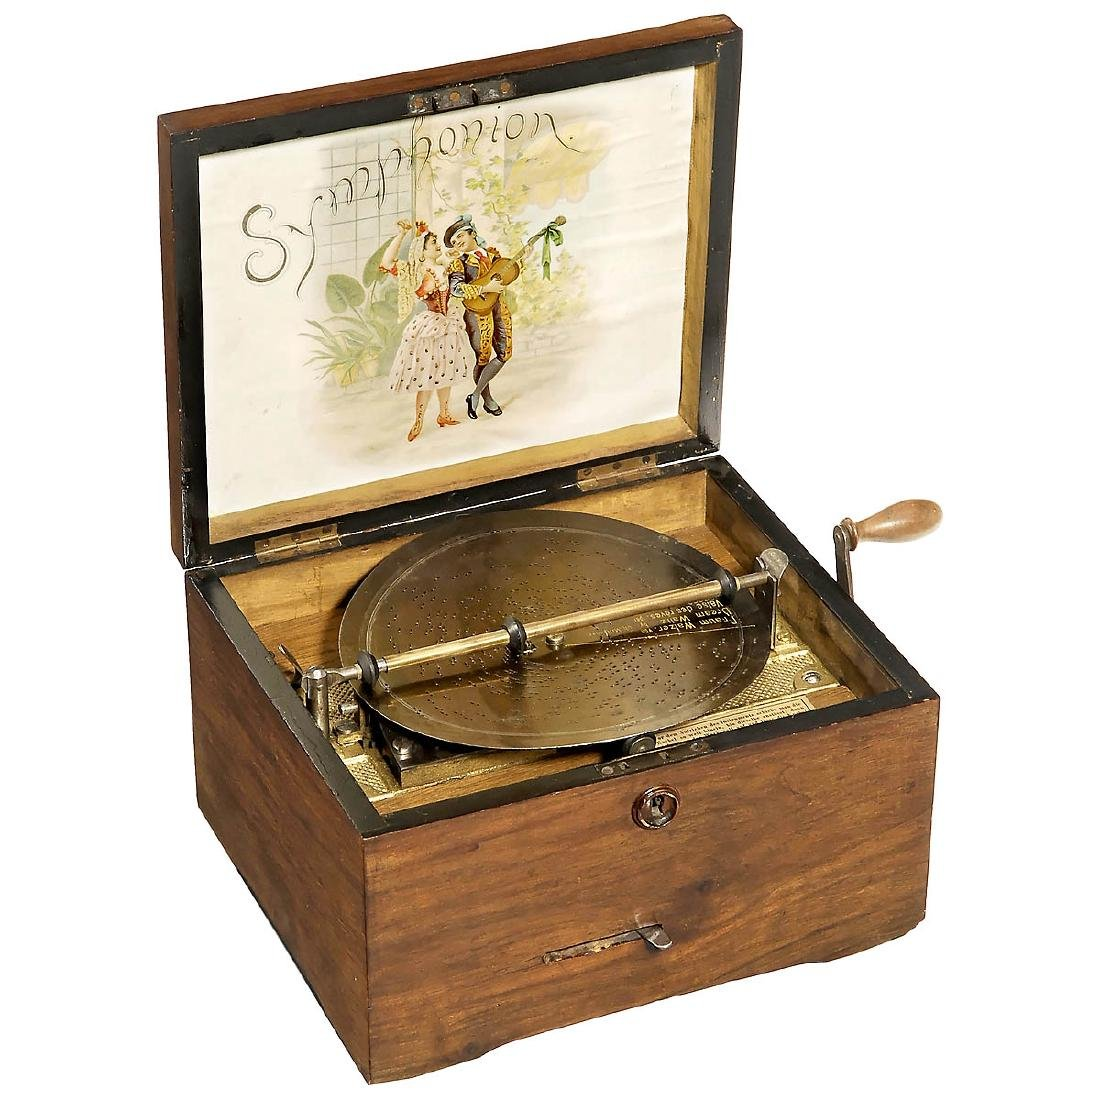 Symphonion No. 10 Disc Musical Box, c. 1900